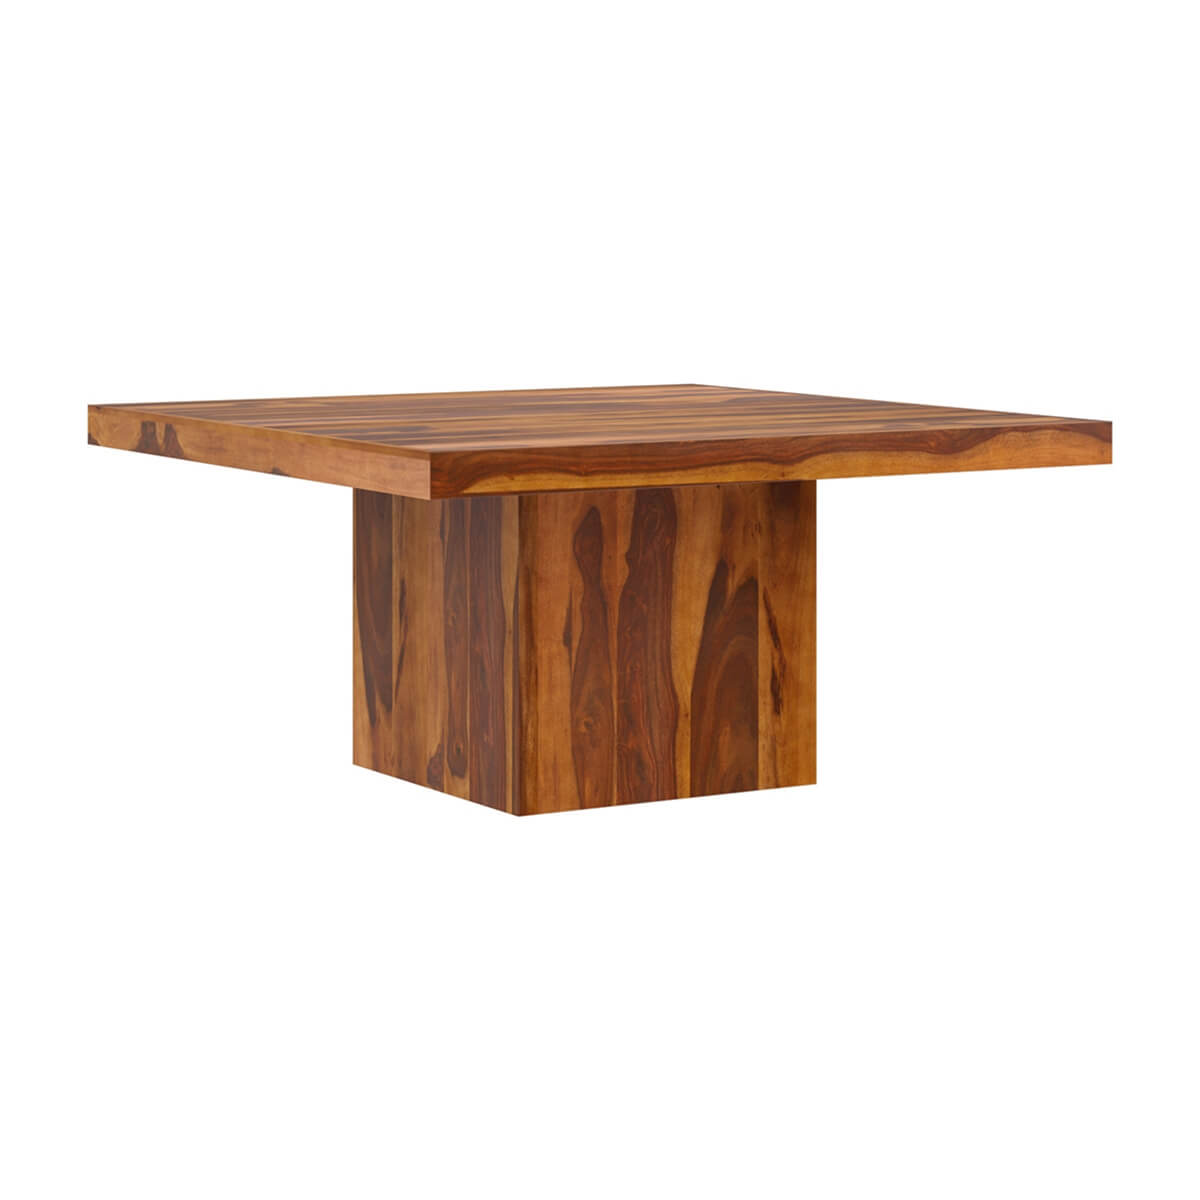 Frisco Modern Solid Wood Rectangular Rustic Dining Room Table: Solid Wood Modern Rustic Block Pedestal Square Dining